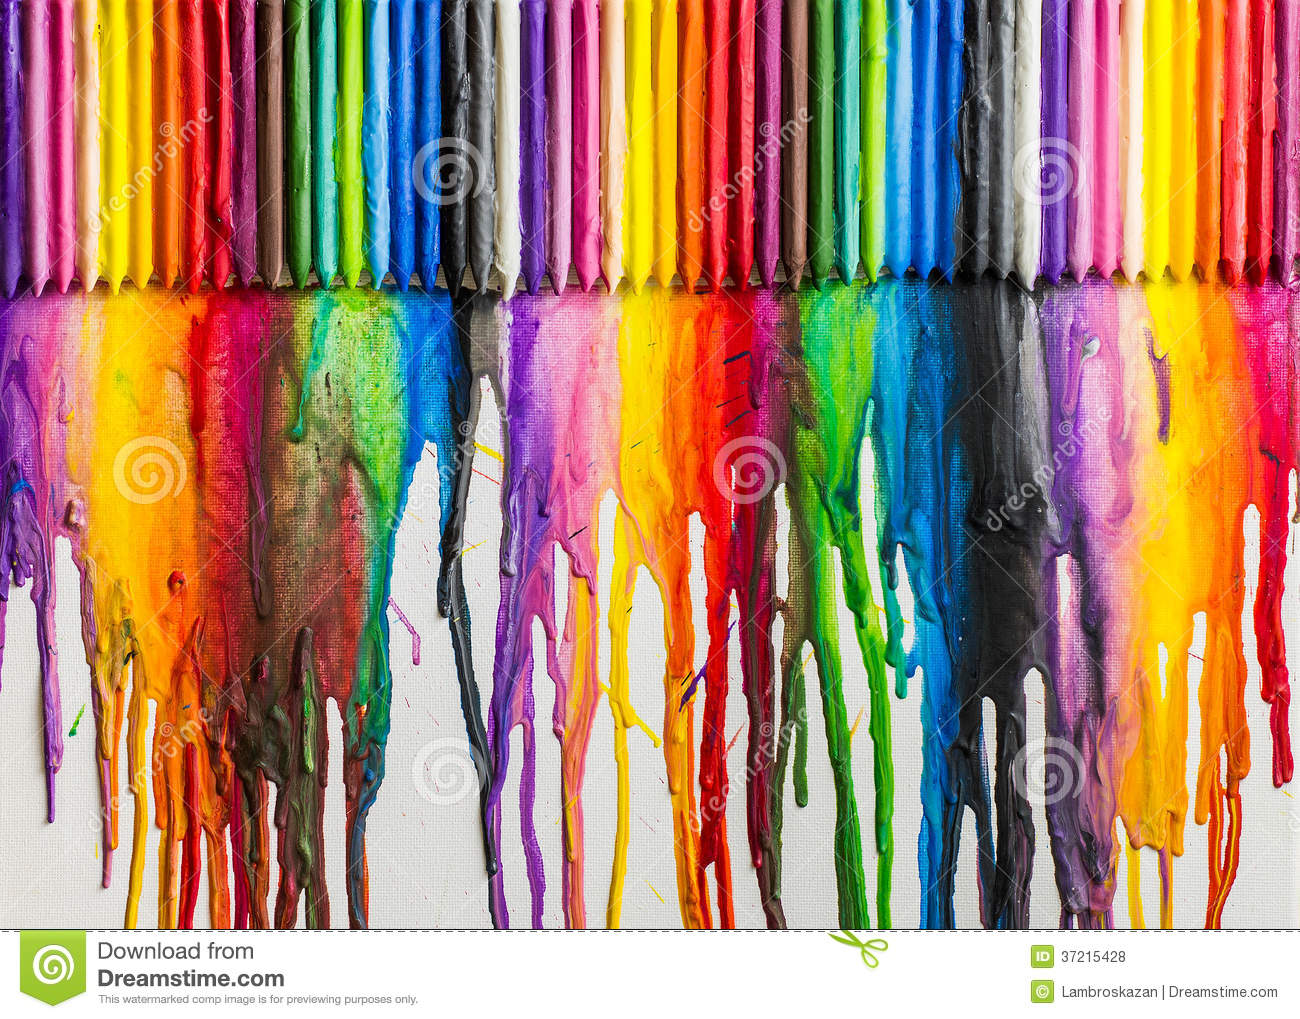 Melted crayons colorful abstract royalty free stock photos for Muestras de colores de pintura